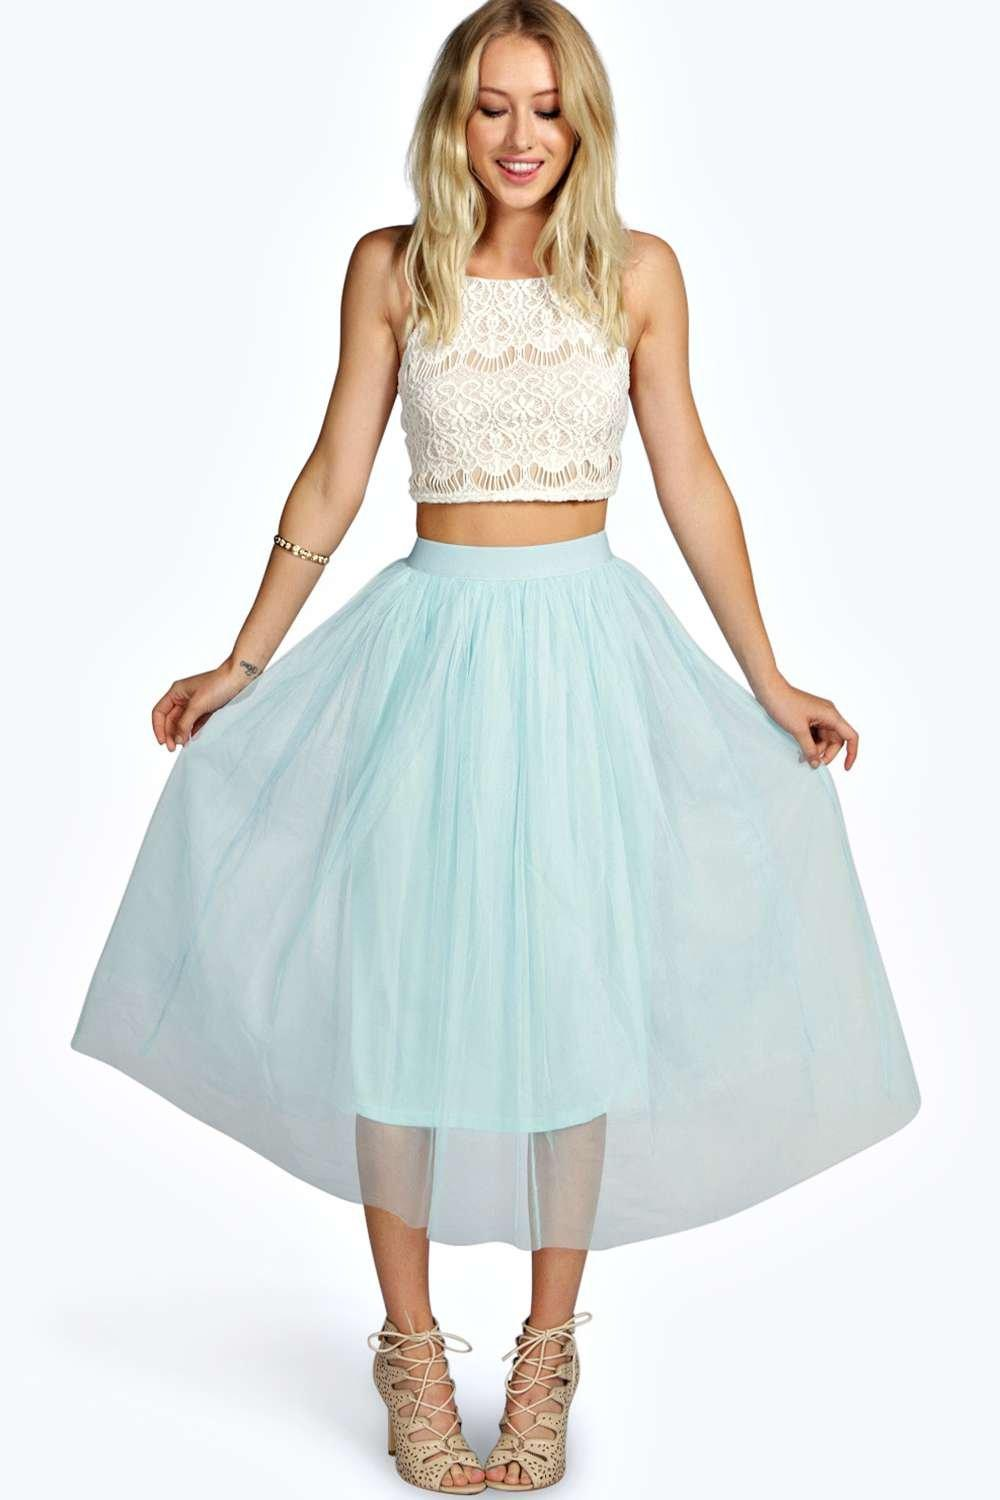 Boutique Sophie Tulle Mesh Full Circle Midi Skirt at boohoo.com